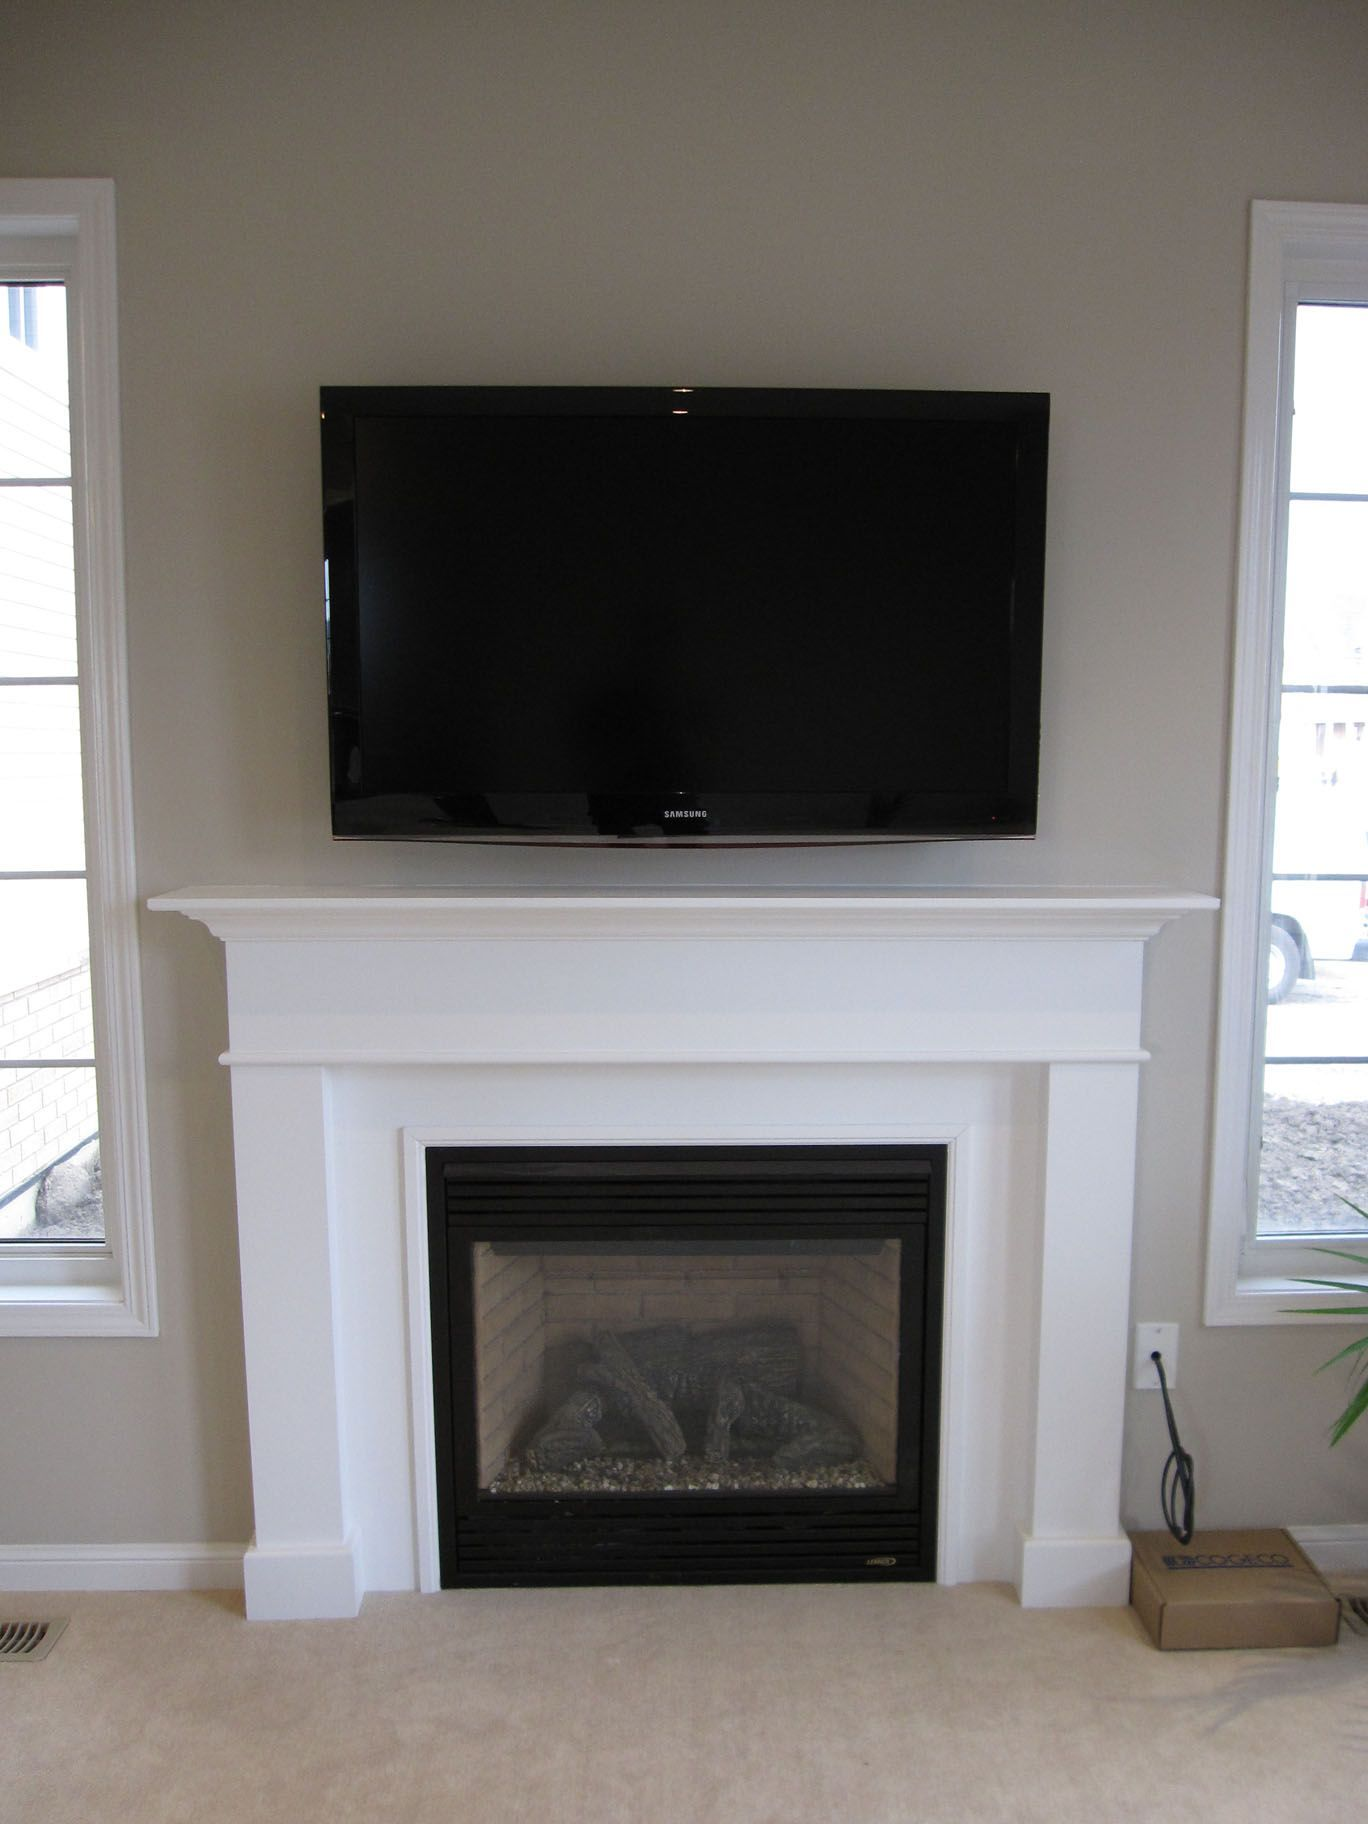 Tv wall ideas with fireplace design also rh pinterest